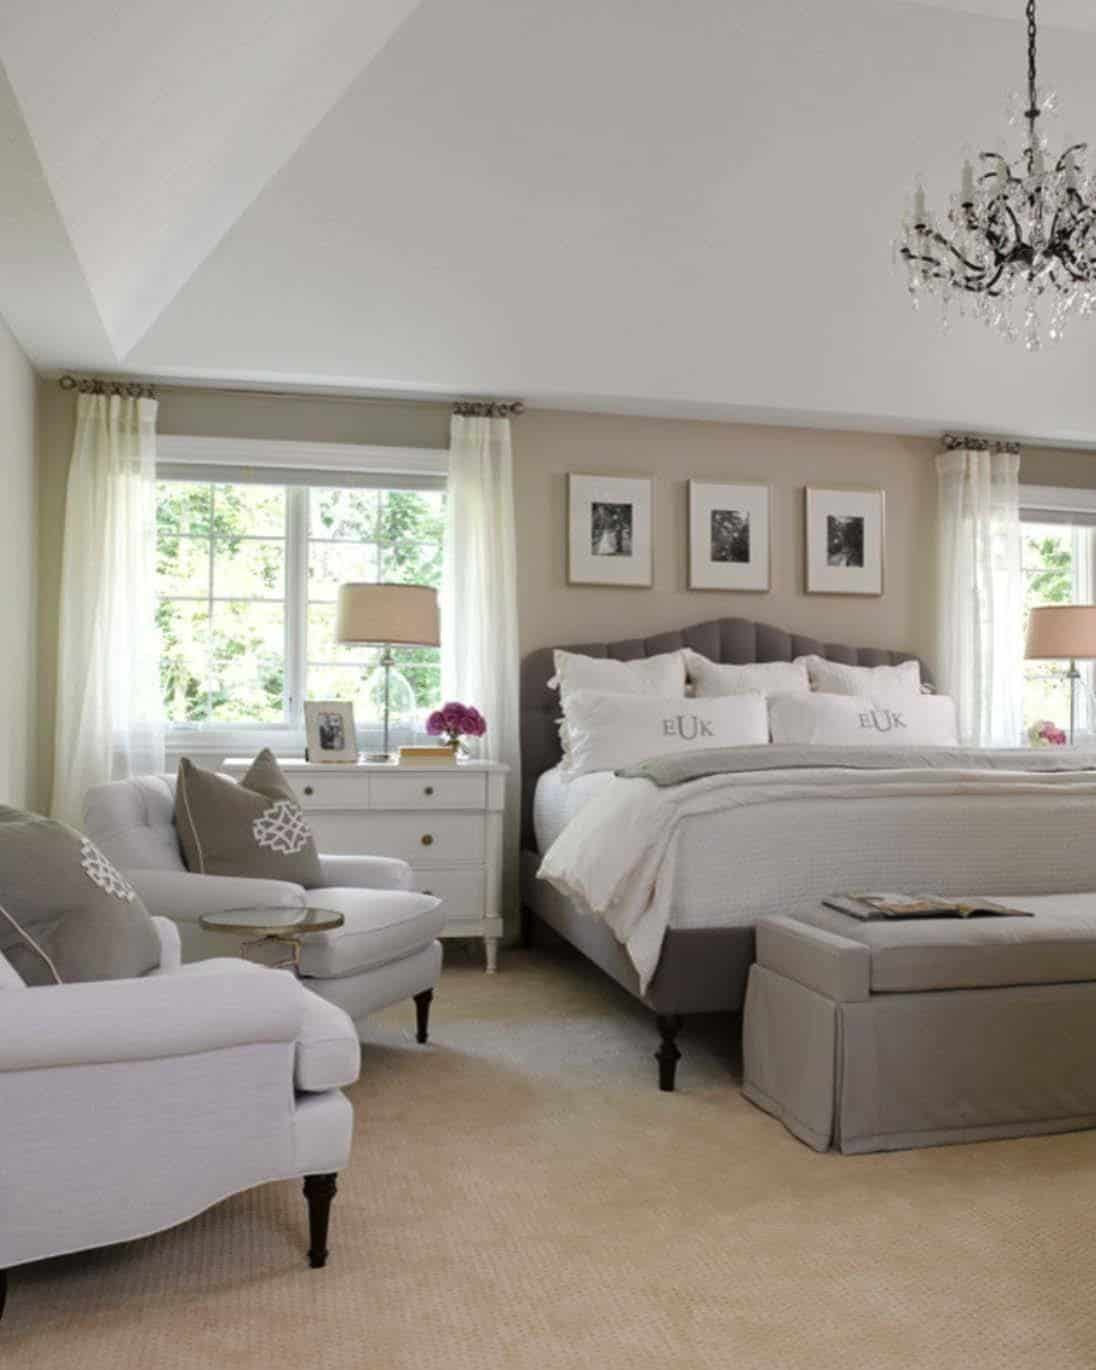 Neutral Color Schemes For Bedrooms: 35+ Spectacular Neutral Bedroom Schemes For Relaxation